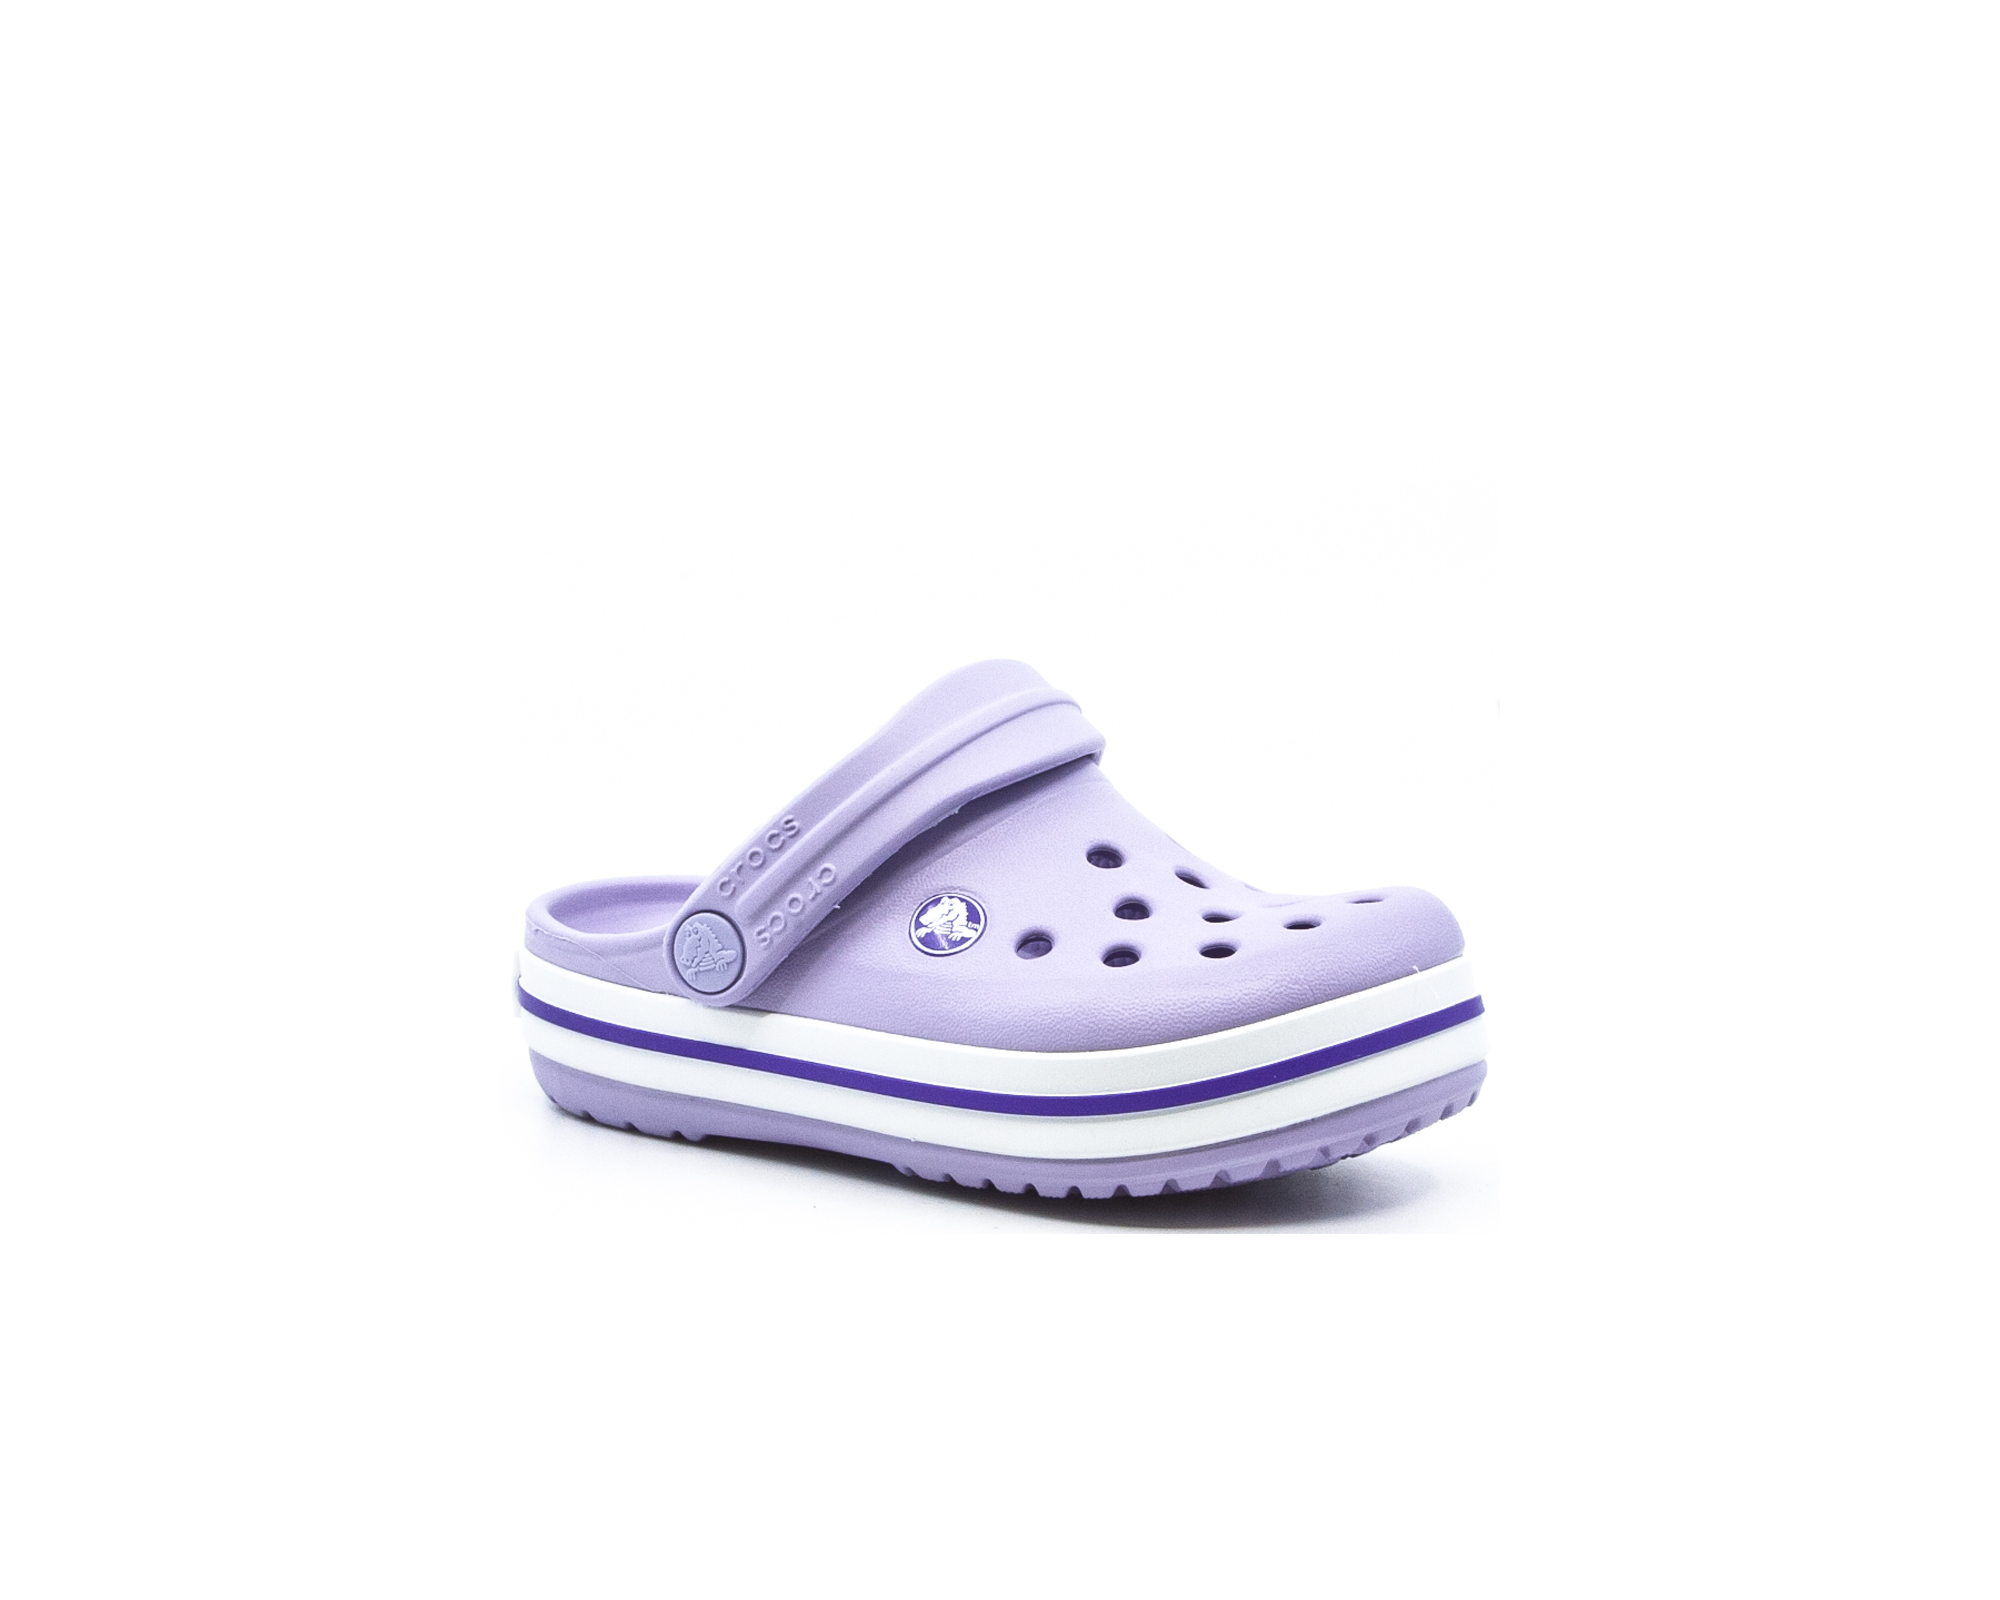 30728af06c8 Crocs Clog Crocband Kids Lavender/Neon Purple Παιδικά Ανατομικά Σαμπό Μοβ  (204537-5P8) - LifeShoes.gr